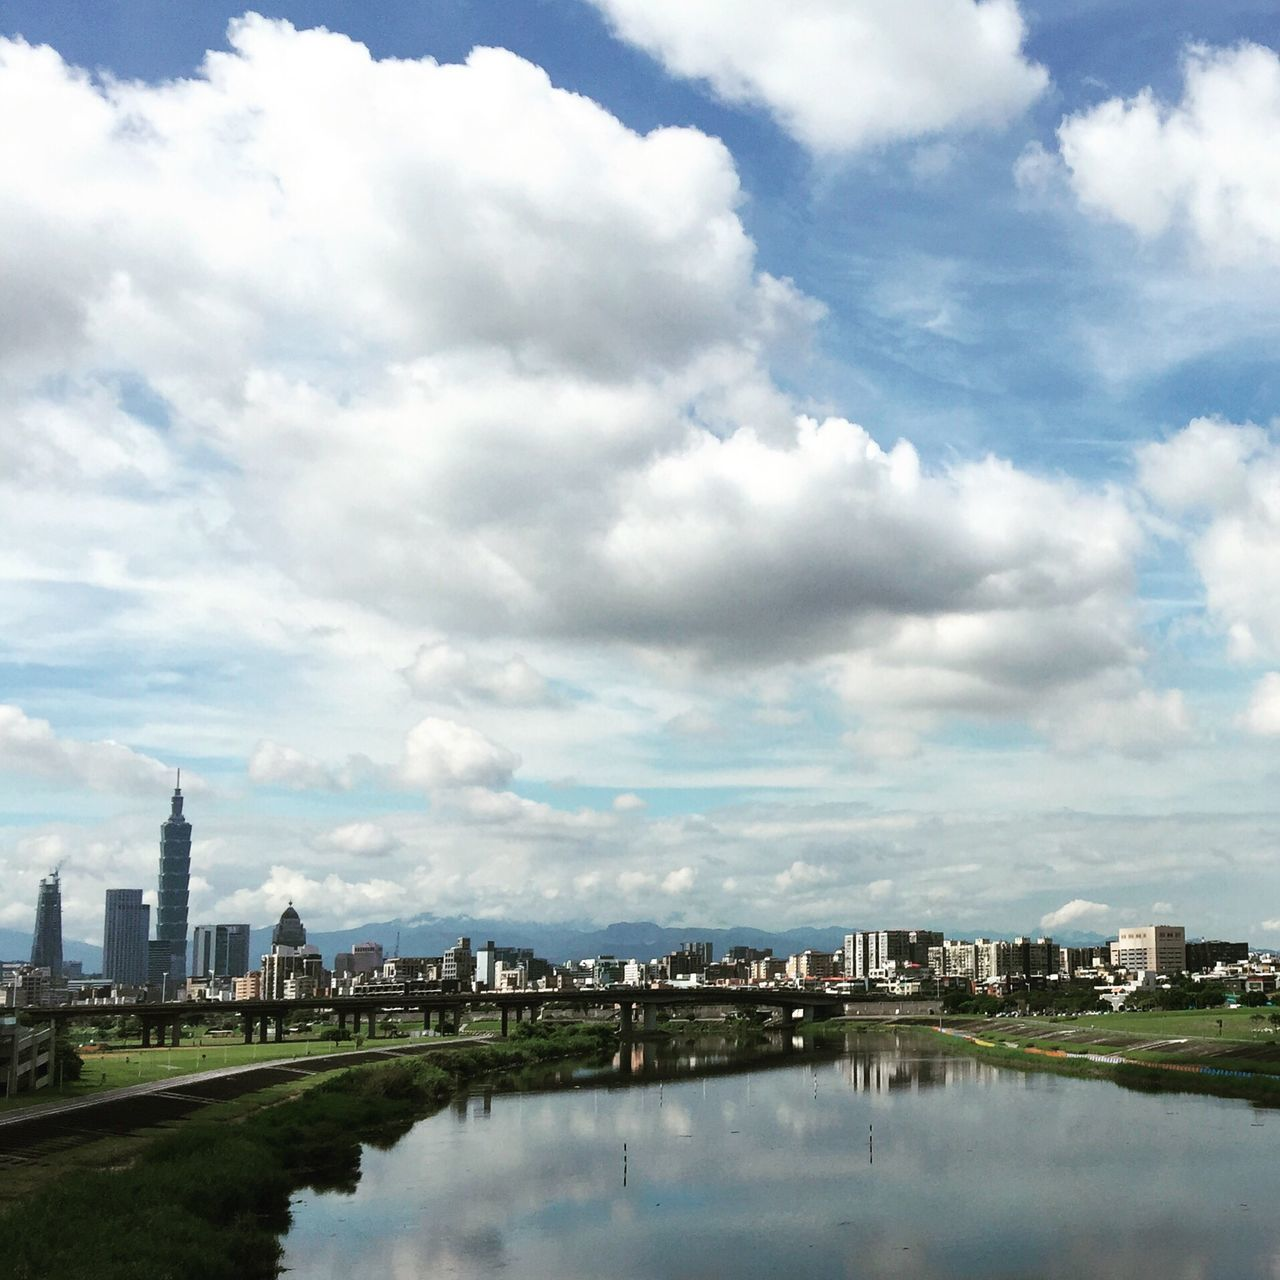 architecture, cloud - sky, sky, building exterior, built structure, city, skyscraper, modern, travel destinations, tower, cityscape, no people, day, reflection, waterfront, outdoors, water, urban skyline, growth, nature, tree